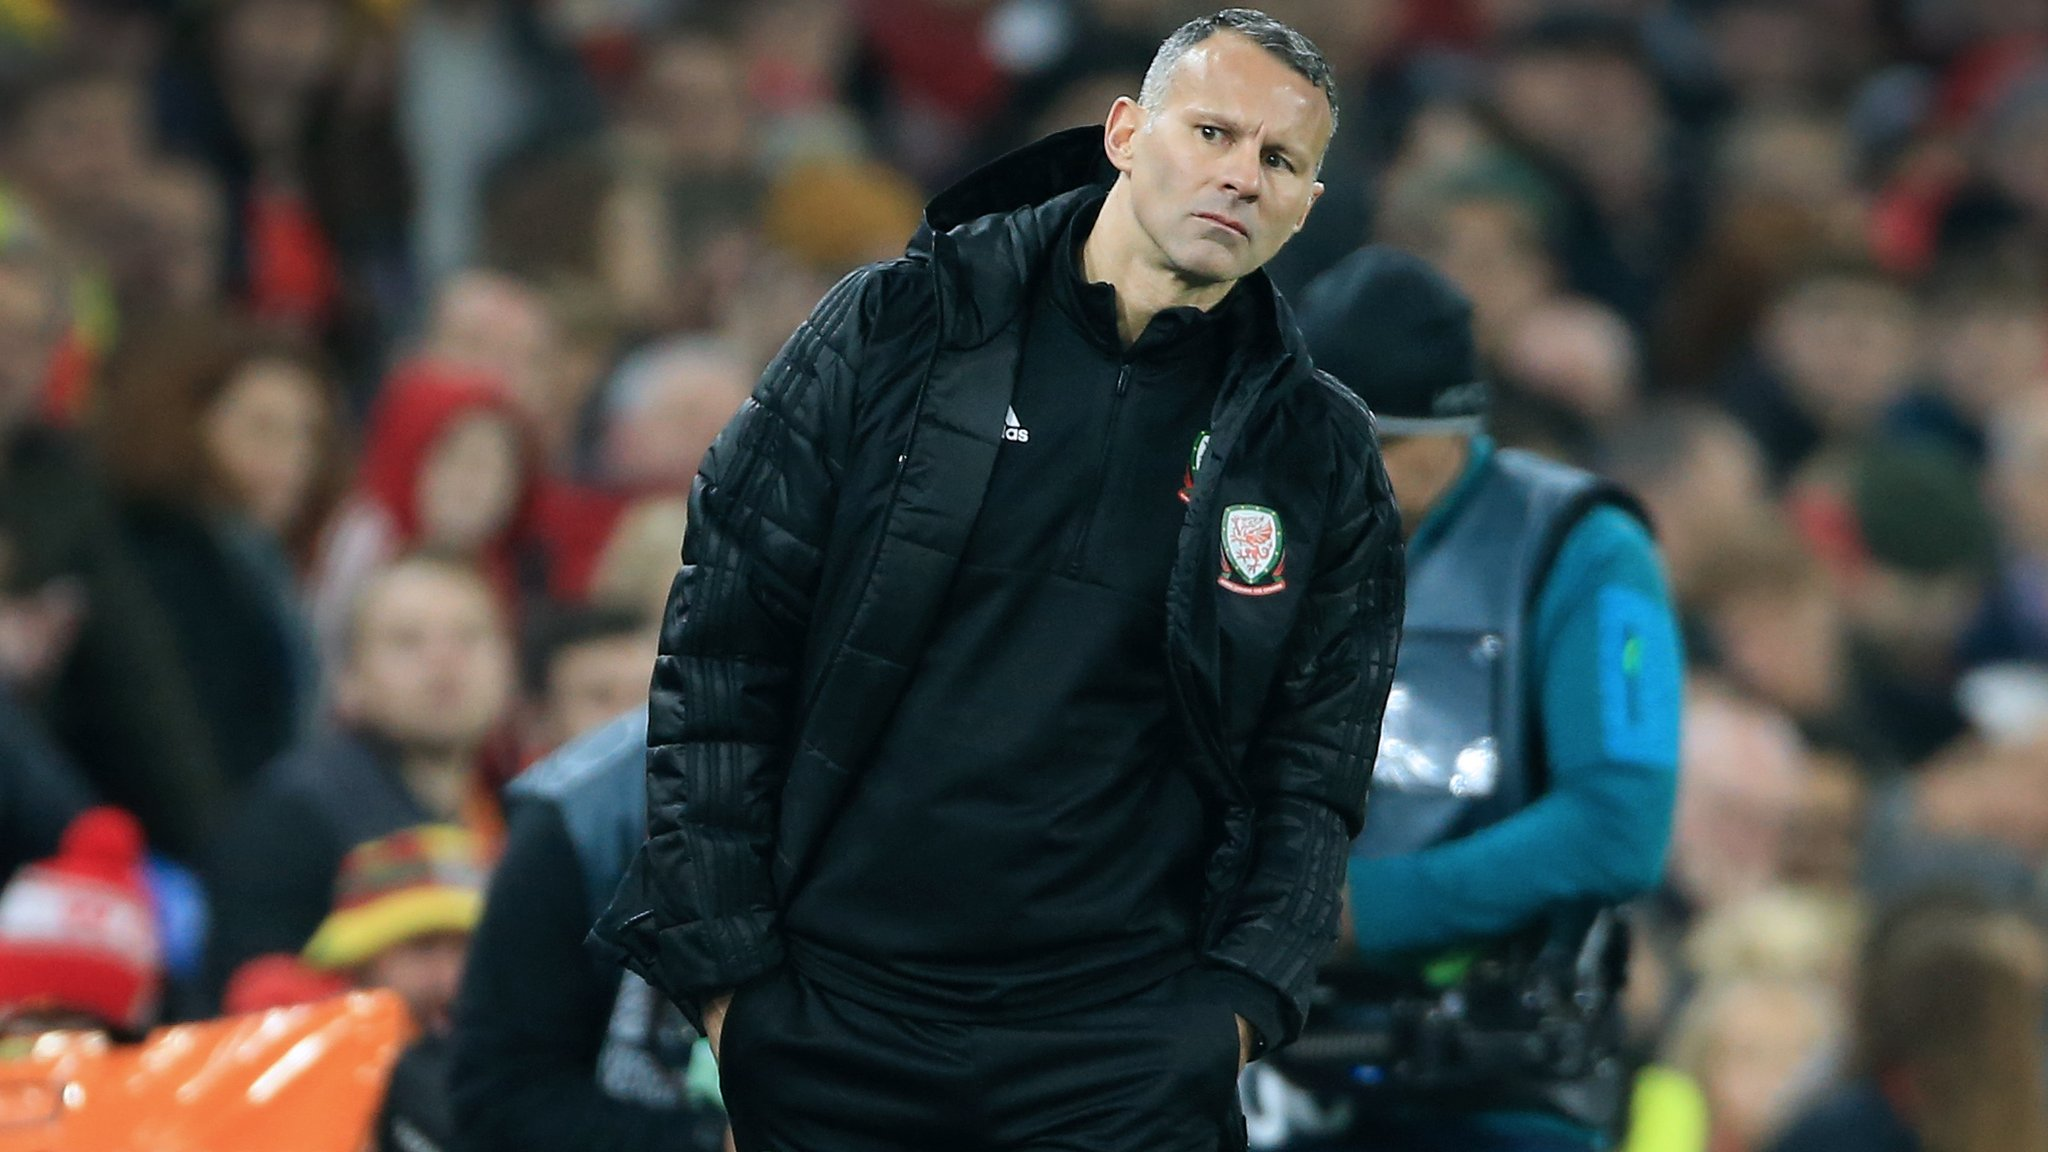 Ryan Giggs: Wales manager's first year - a work in progress?